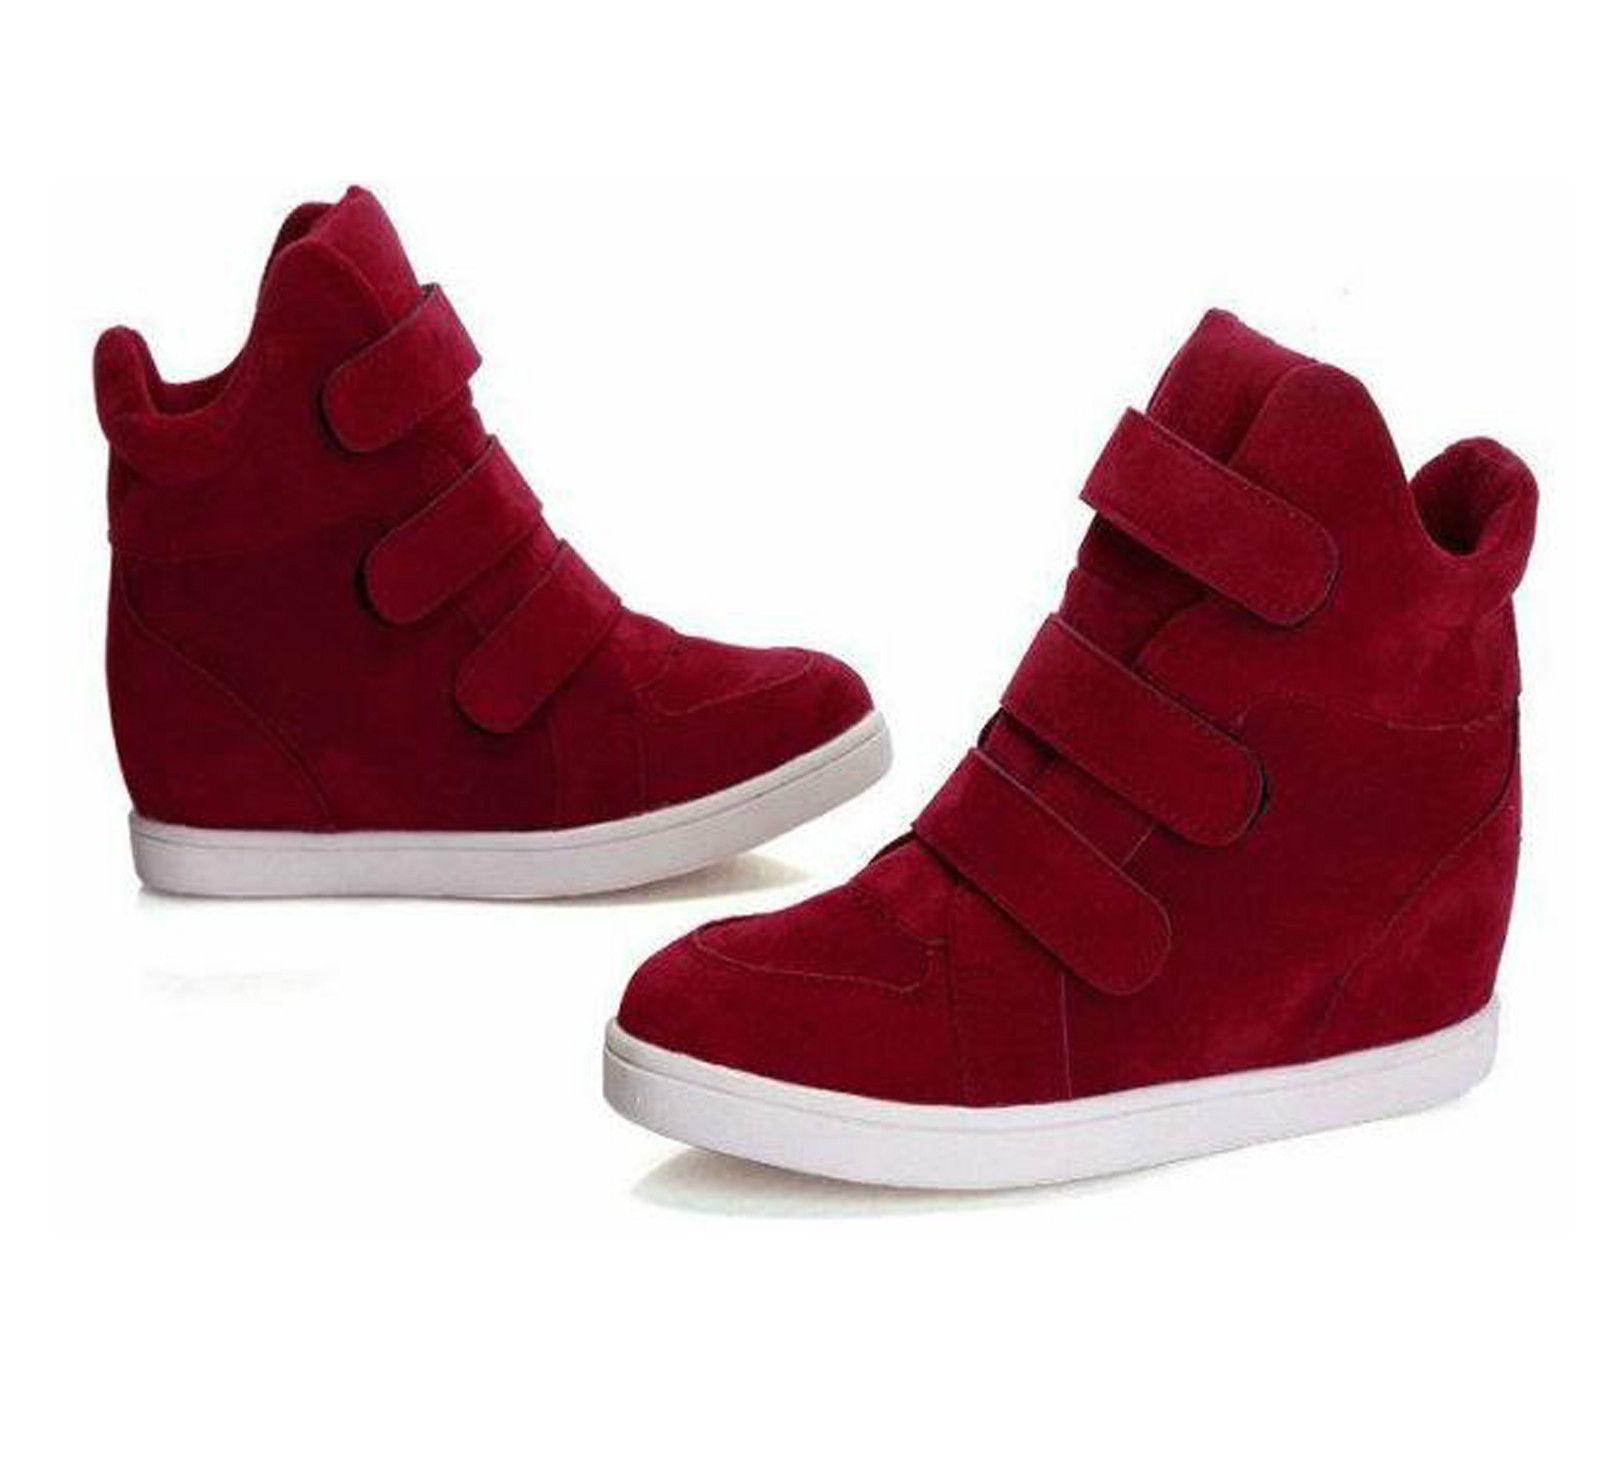 Popular Women Faux Suede Buckles Chunky LOW Heel Ankle Boots Shoes RED Without